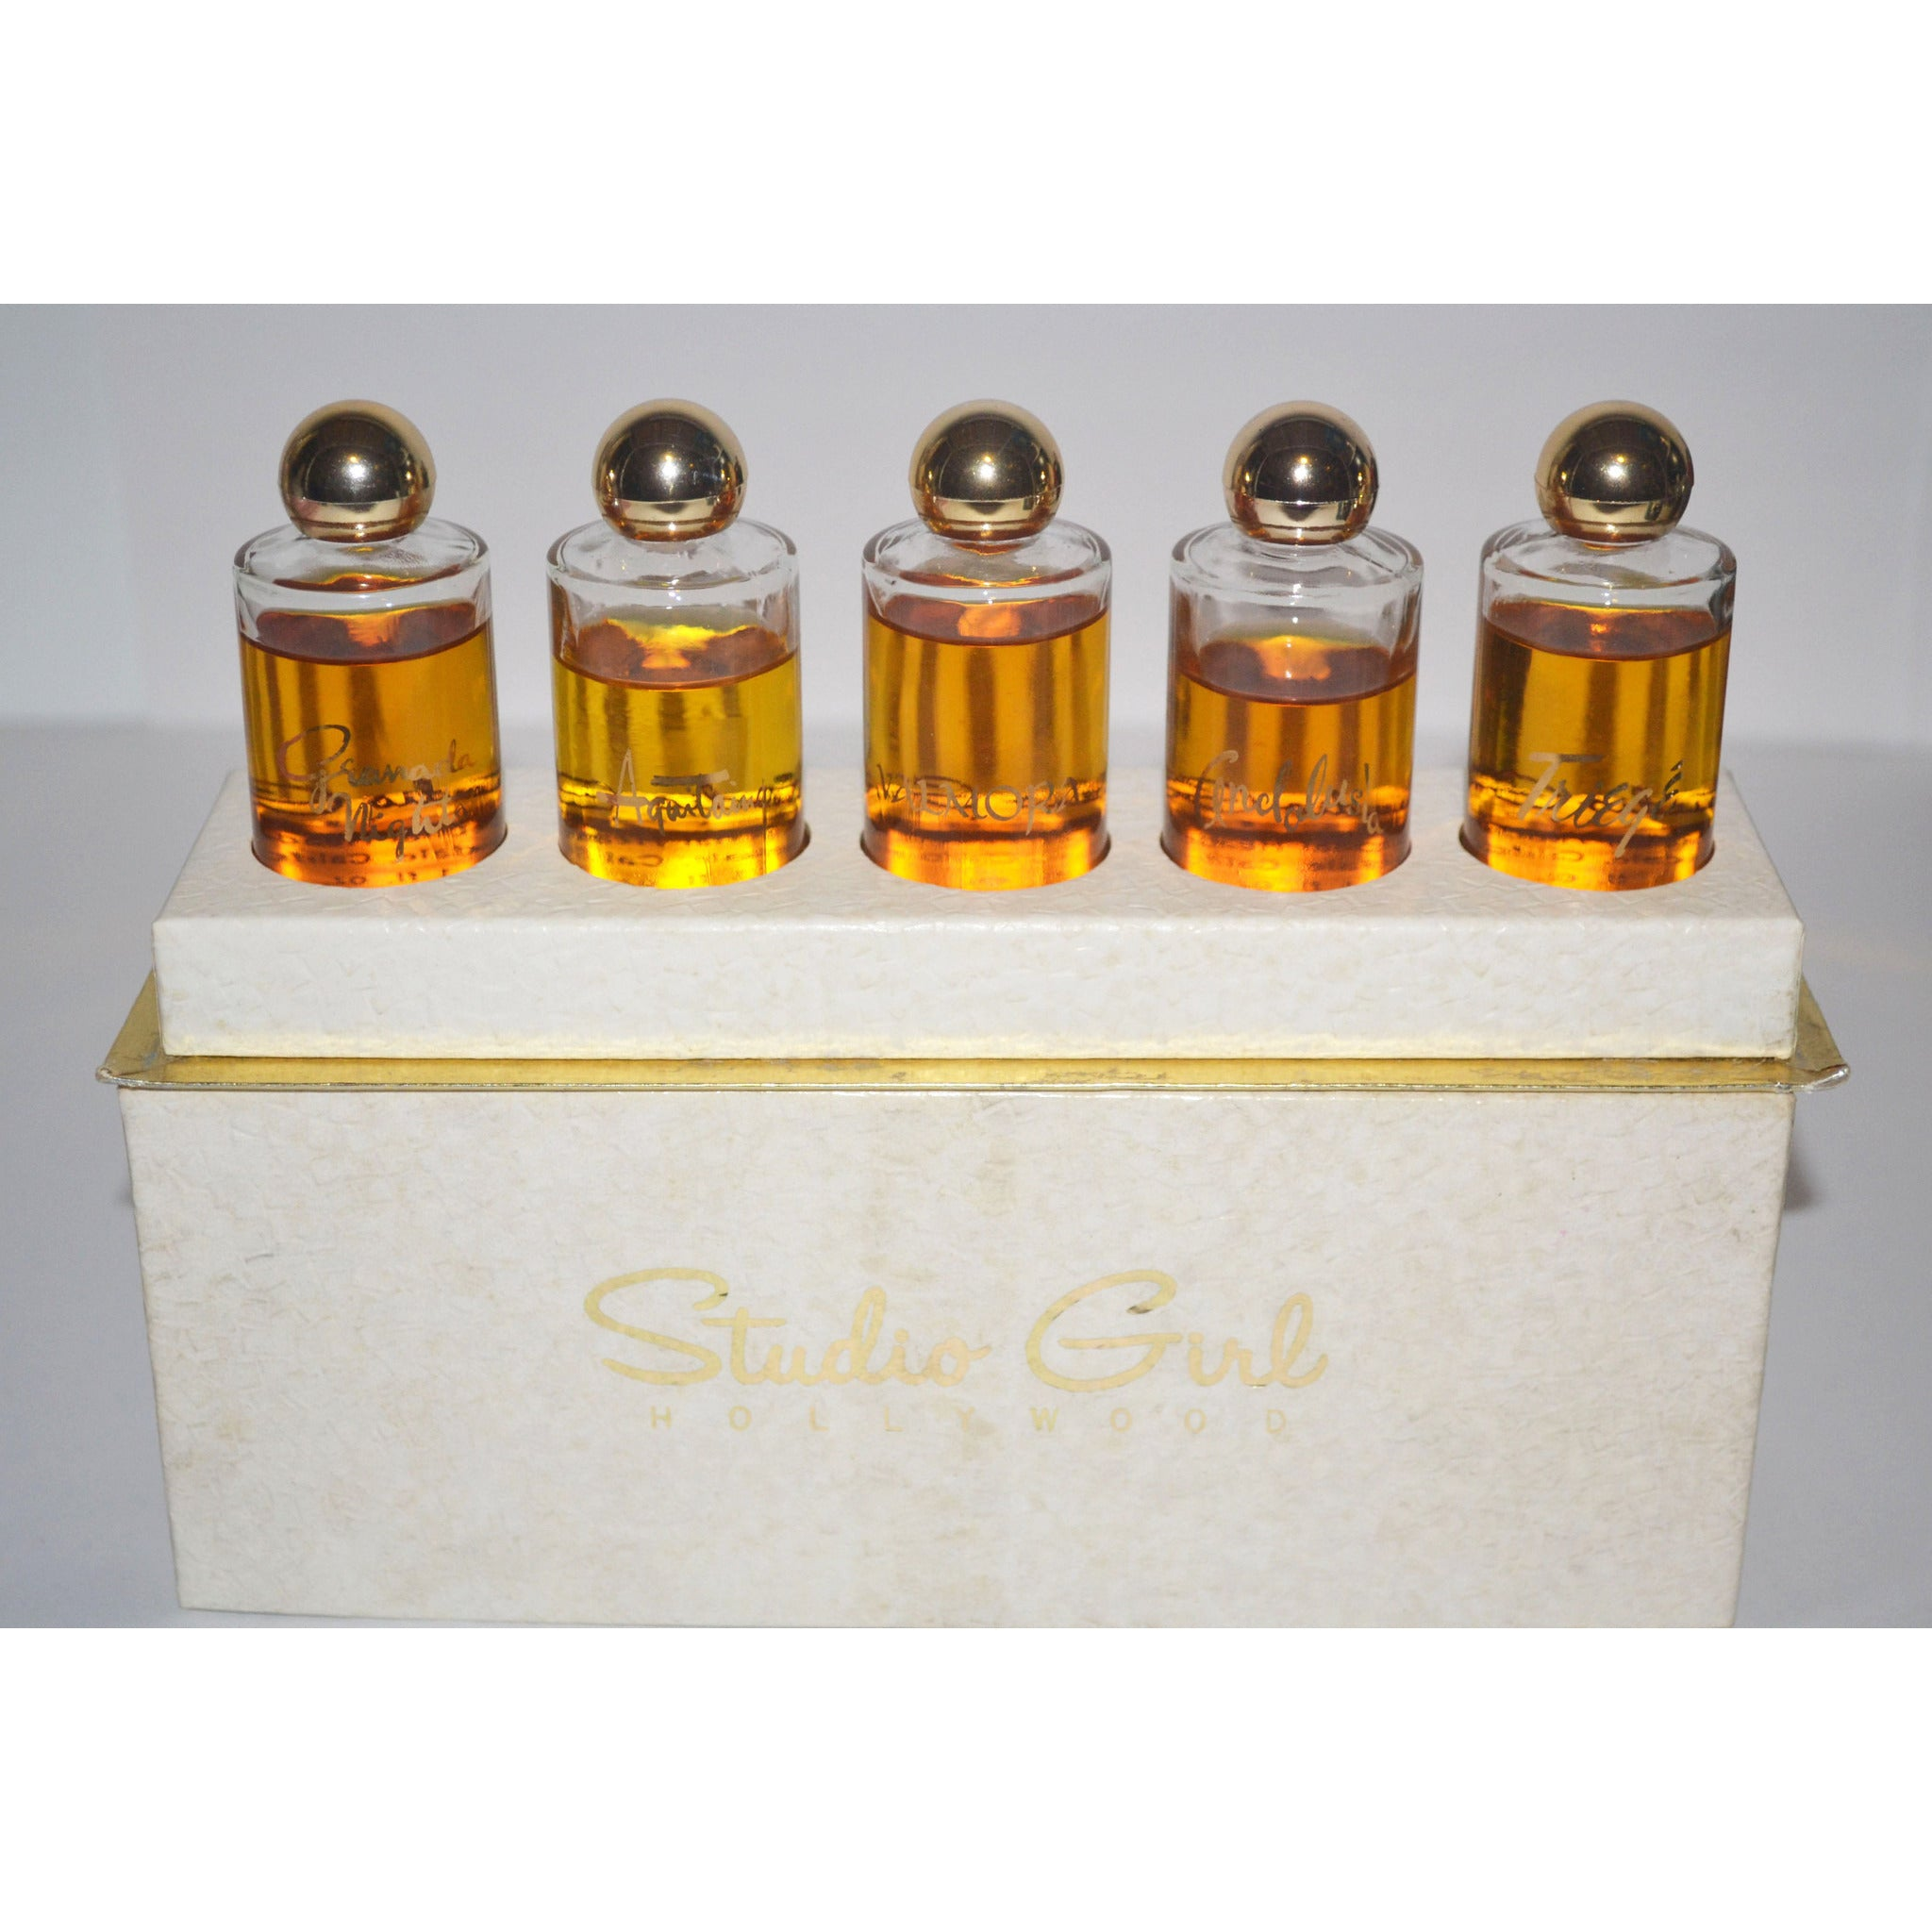 Vintage Studio Girl Hollywood Cologne Royale Set